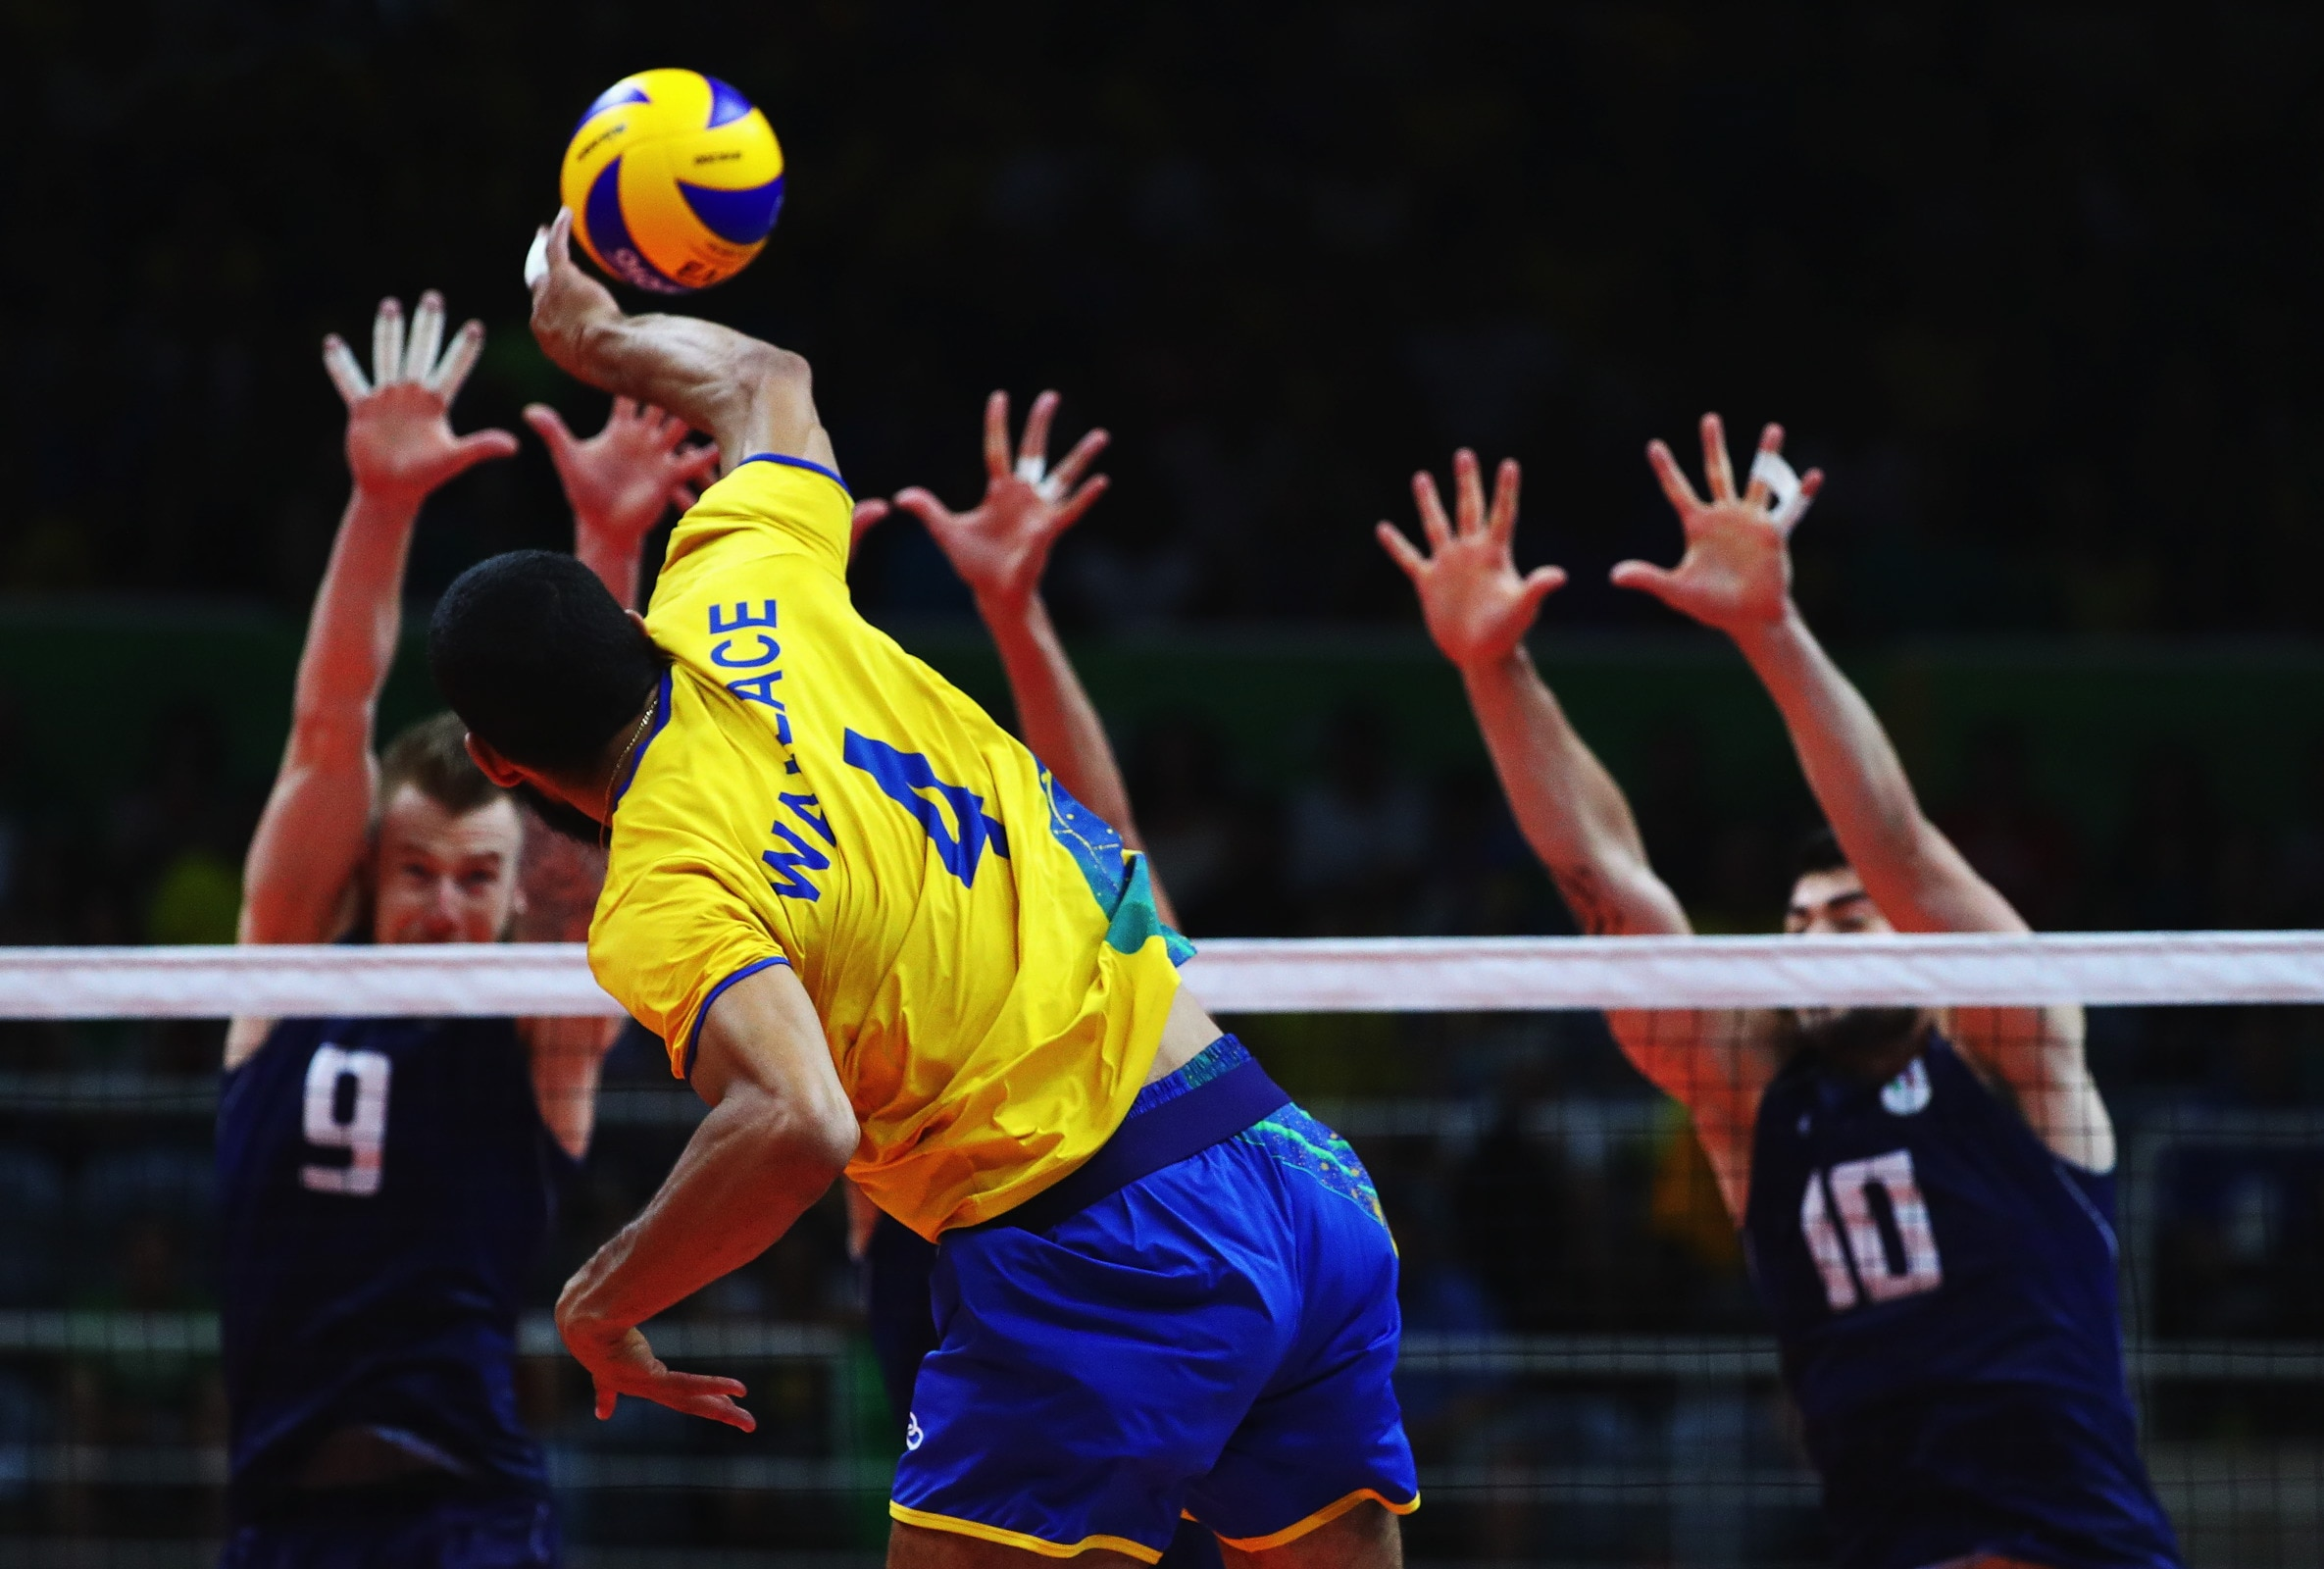 Volleyball hommes